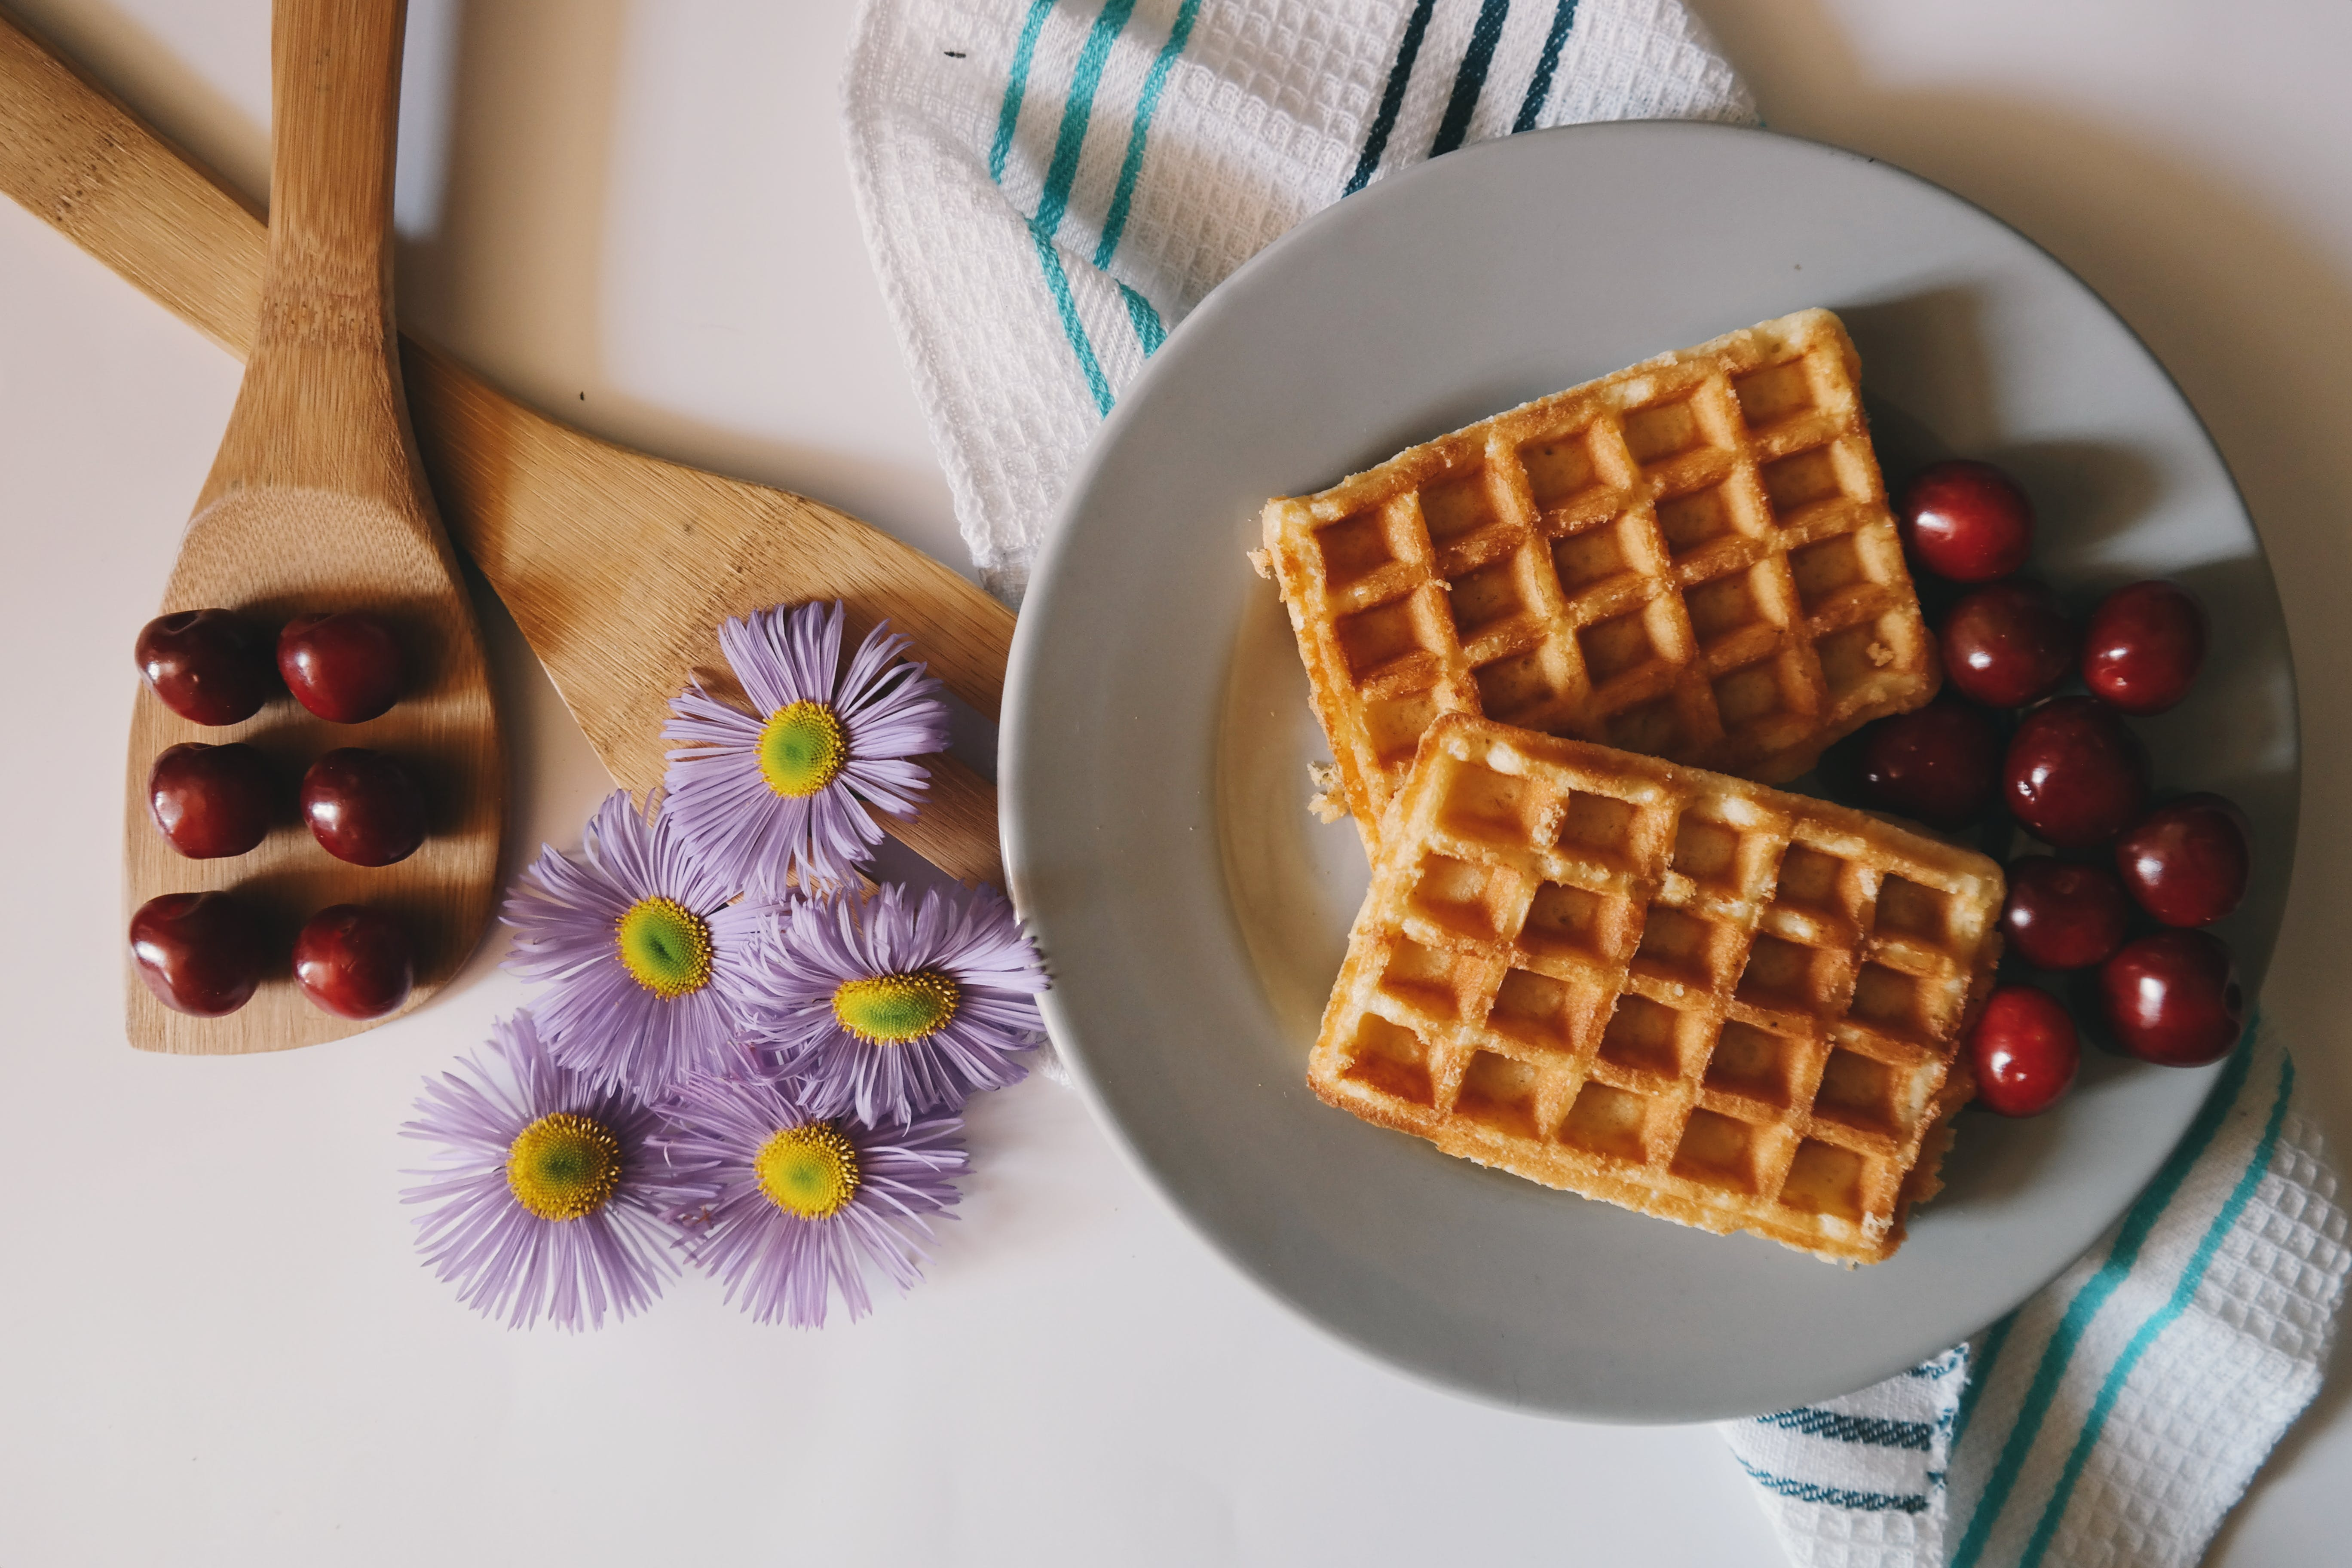 Two Waffles on Plate